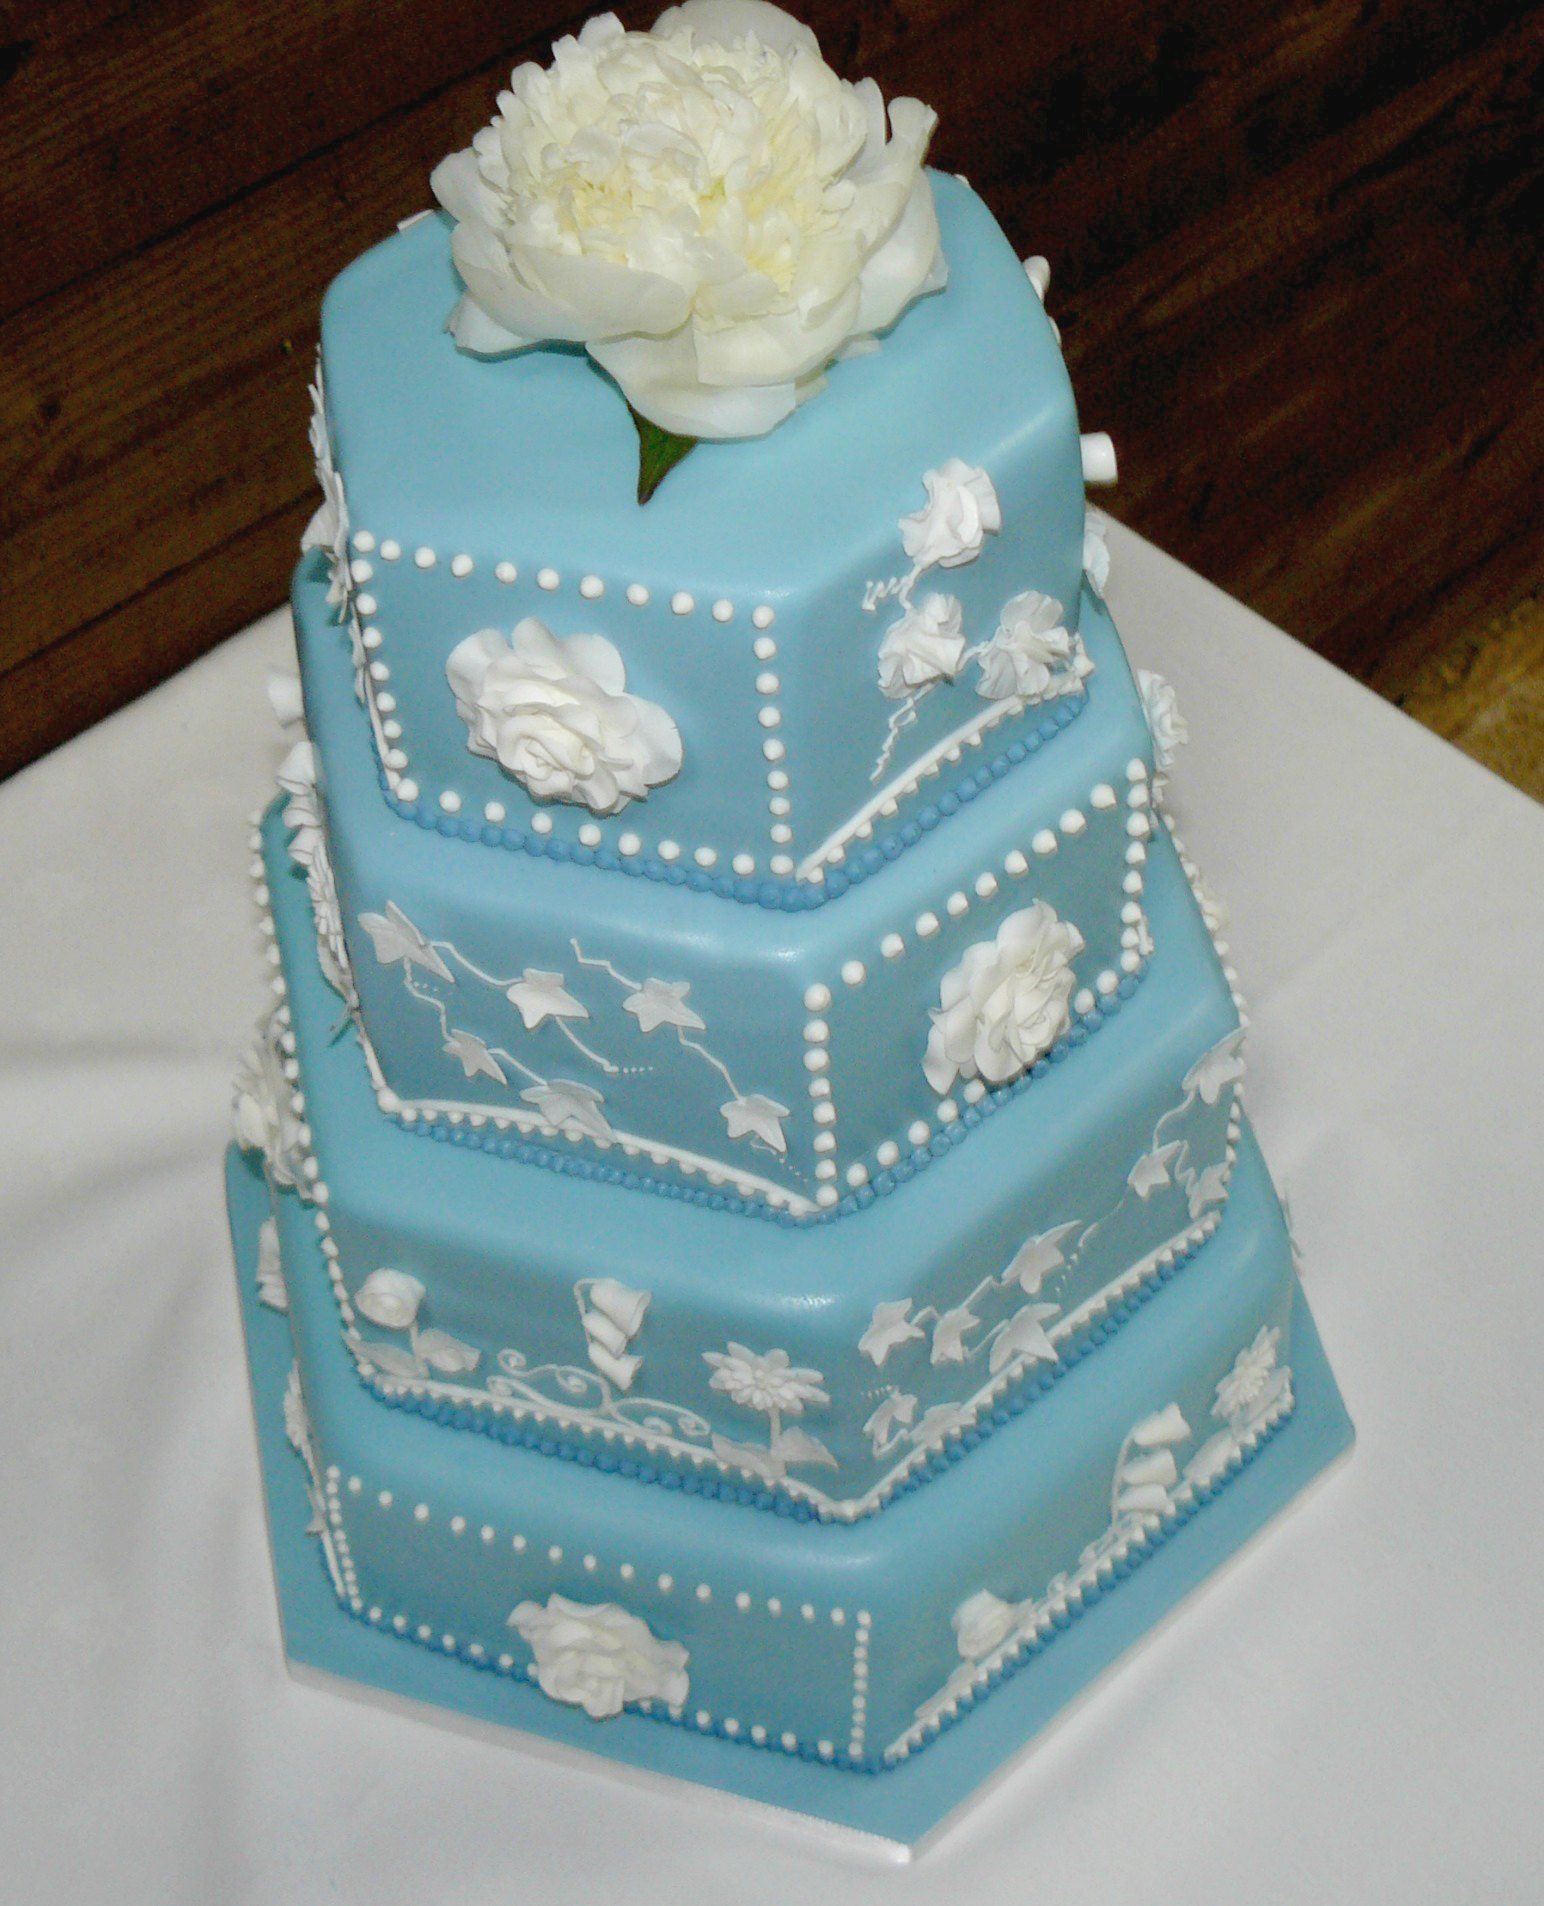 4 tier wedgewood blue wedding cake